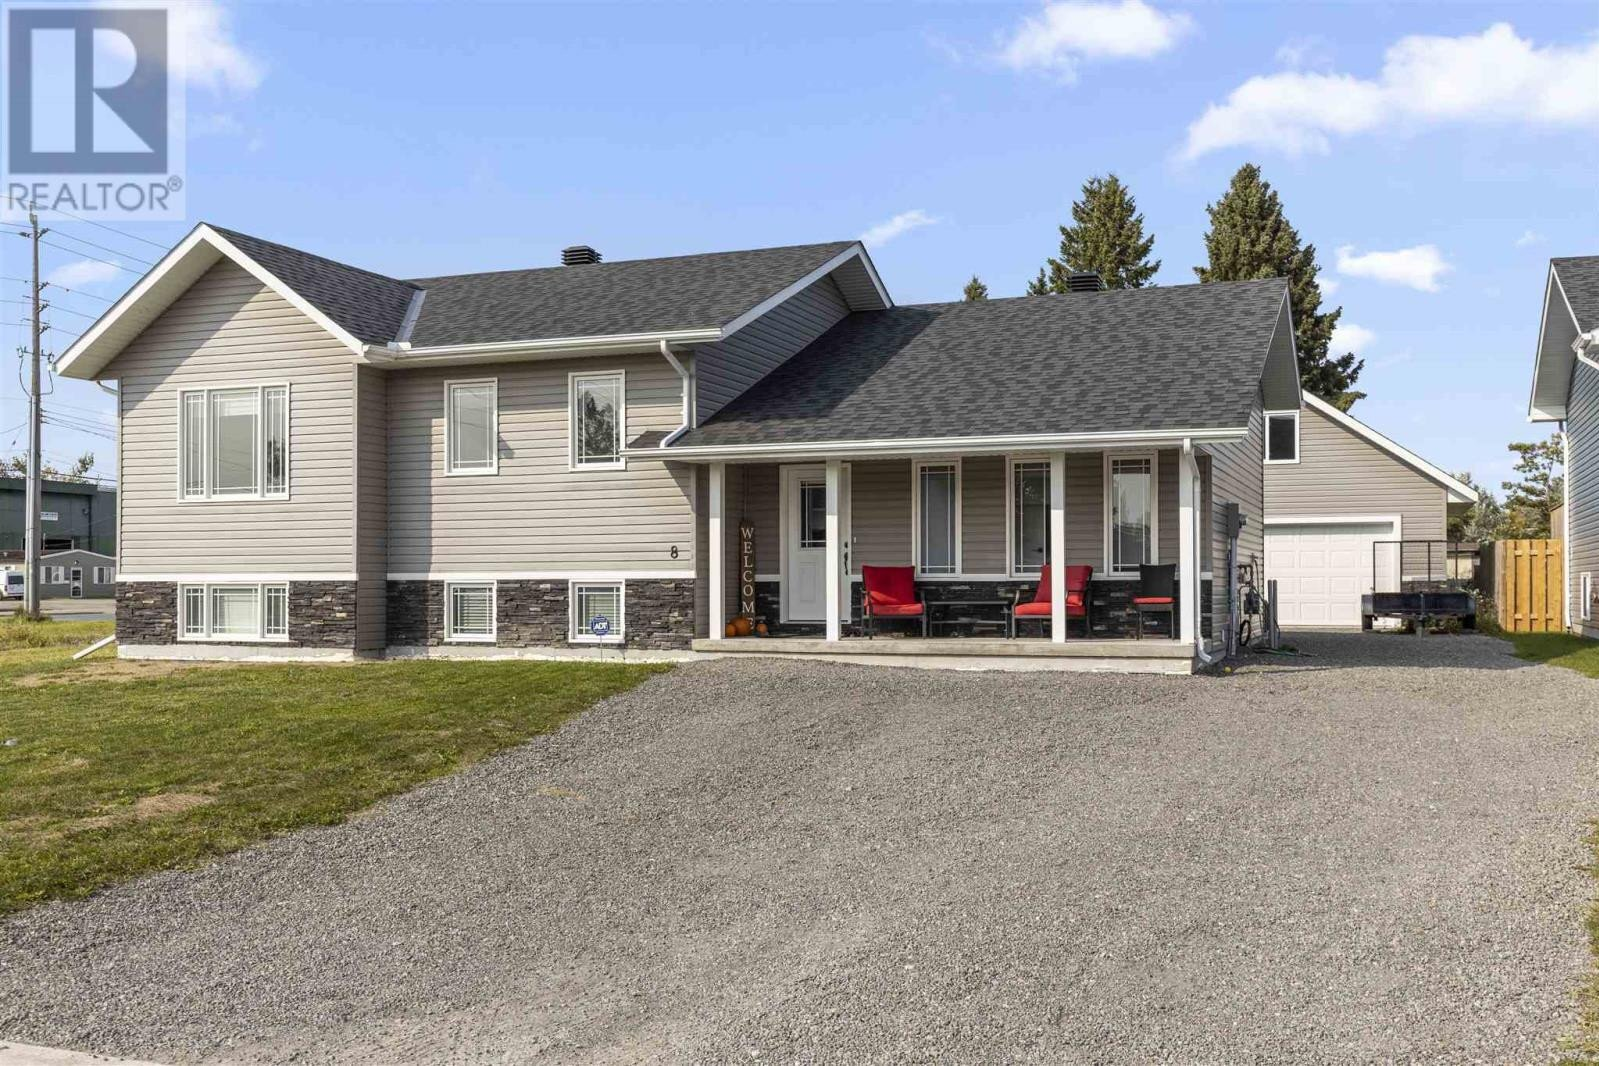 House for sale at 8 Sherbrook Dr Sault Ste. Marie Ontario - MLS: SM130059